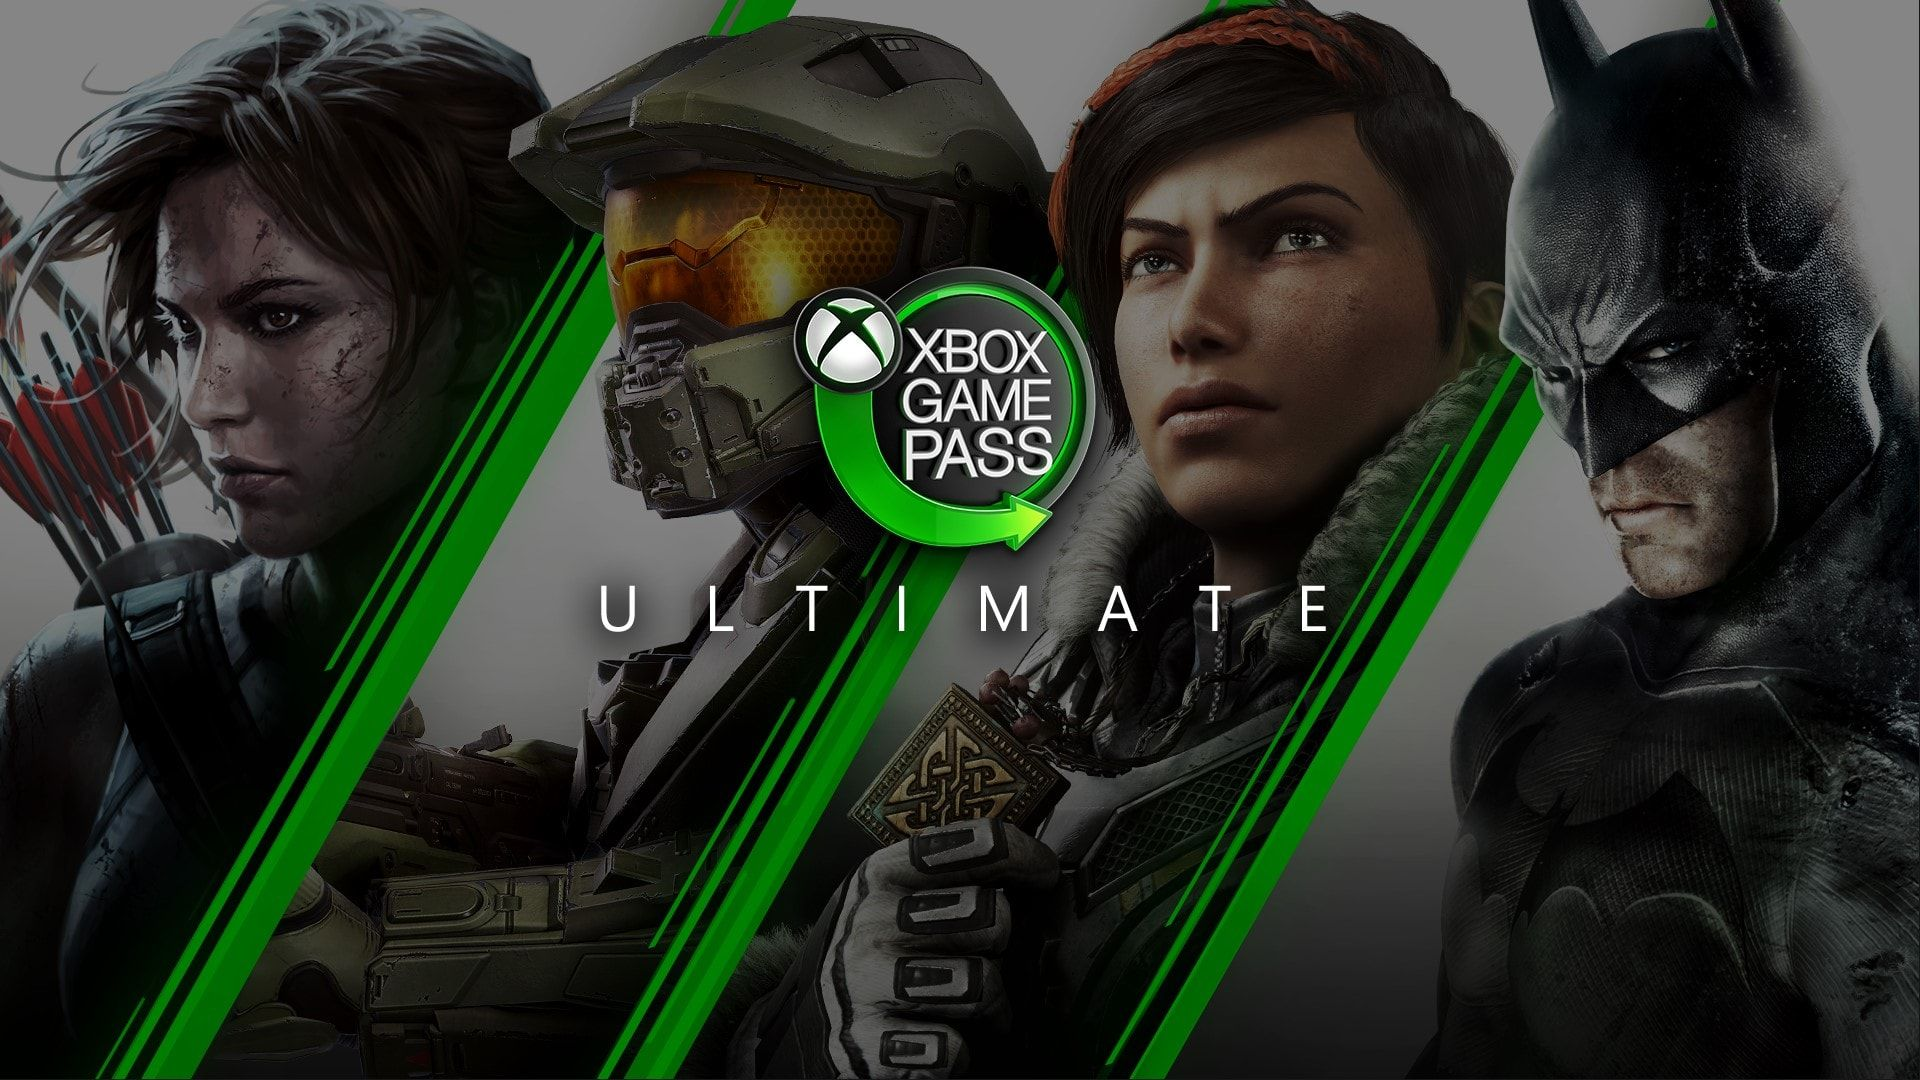 Xbox Game Pass Ultimate Service Launched Game pass, Xbox